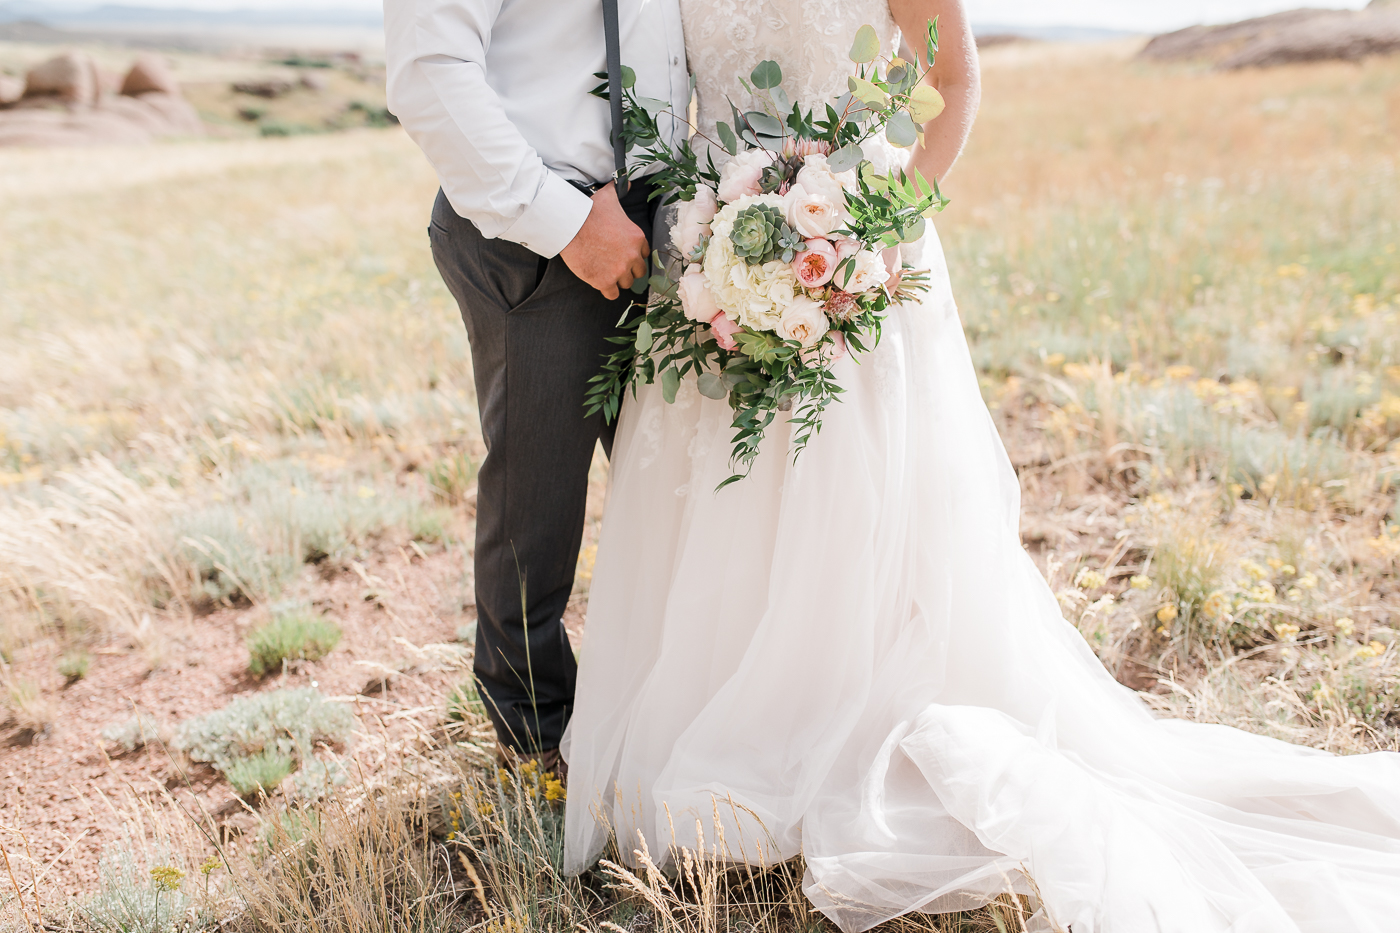 Bride and Groom portraits by Megan Lee Photography